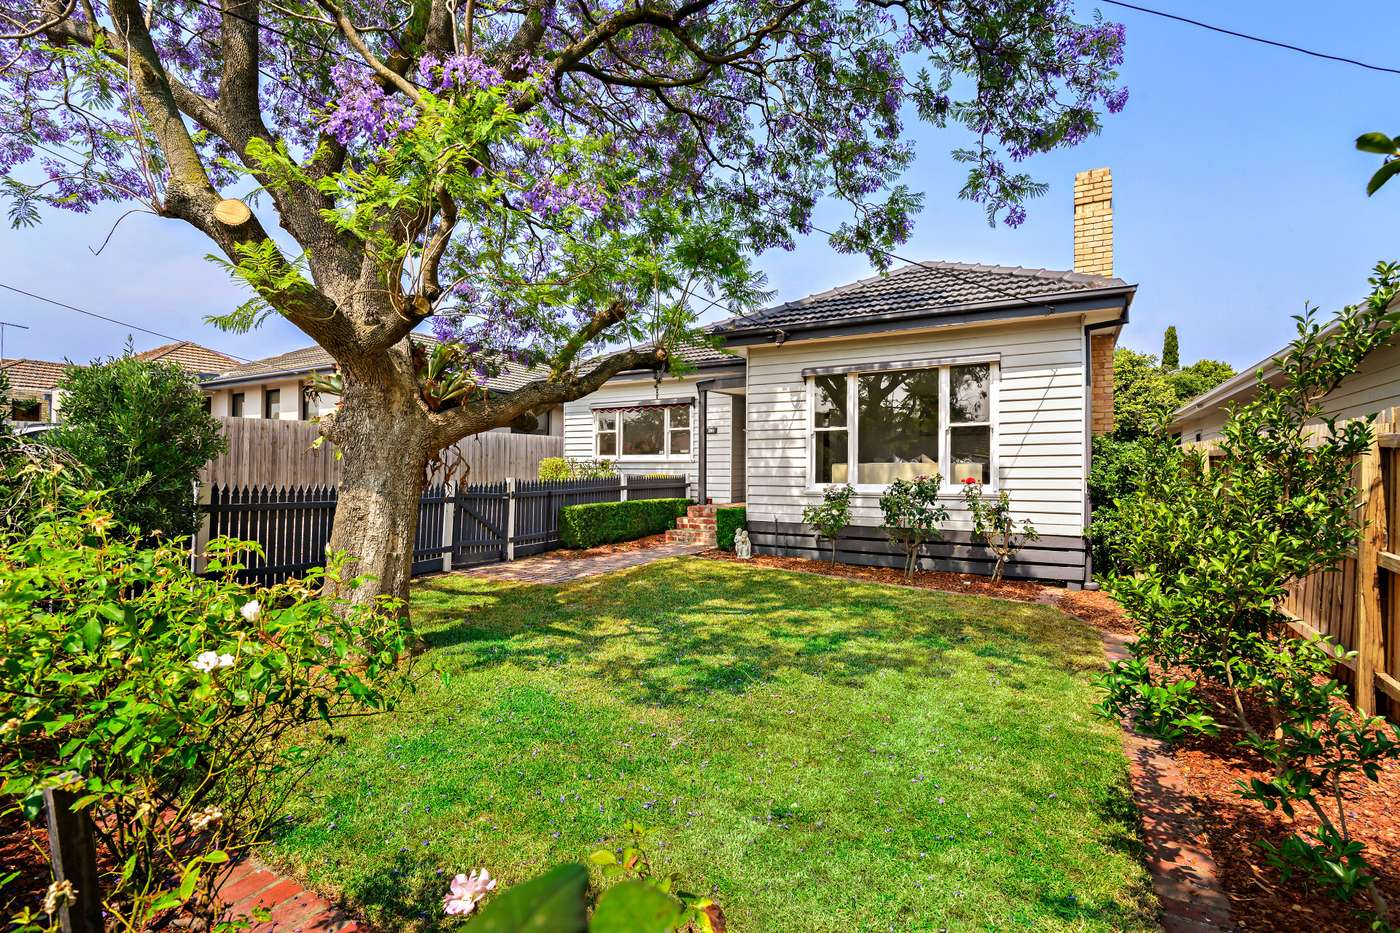 Main view of Homely house listing, 10 Farm Road, Oakleigh South, VIC 3167